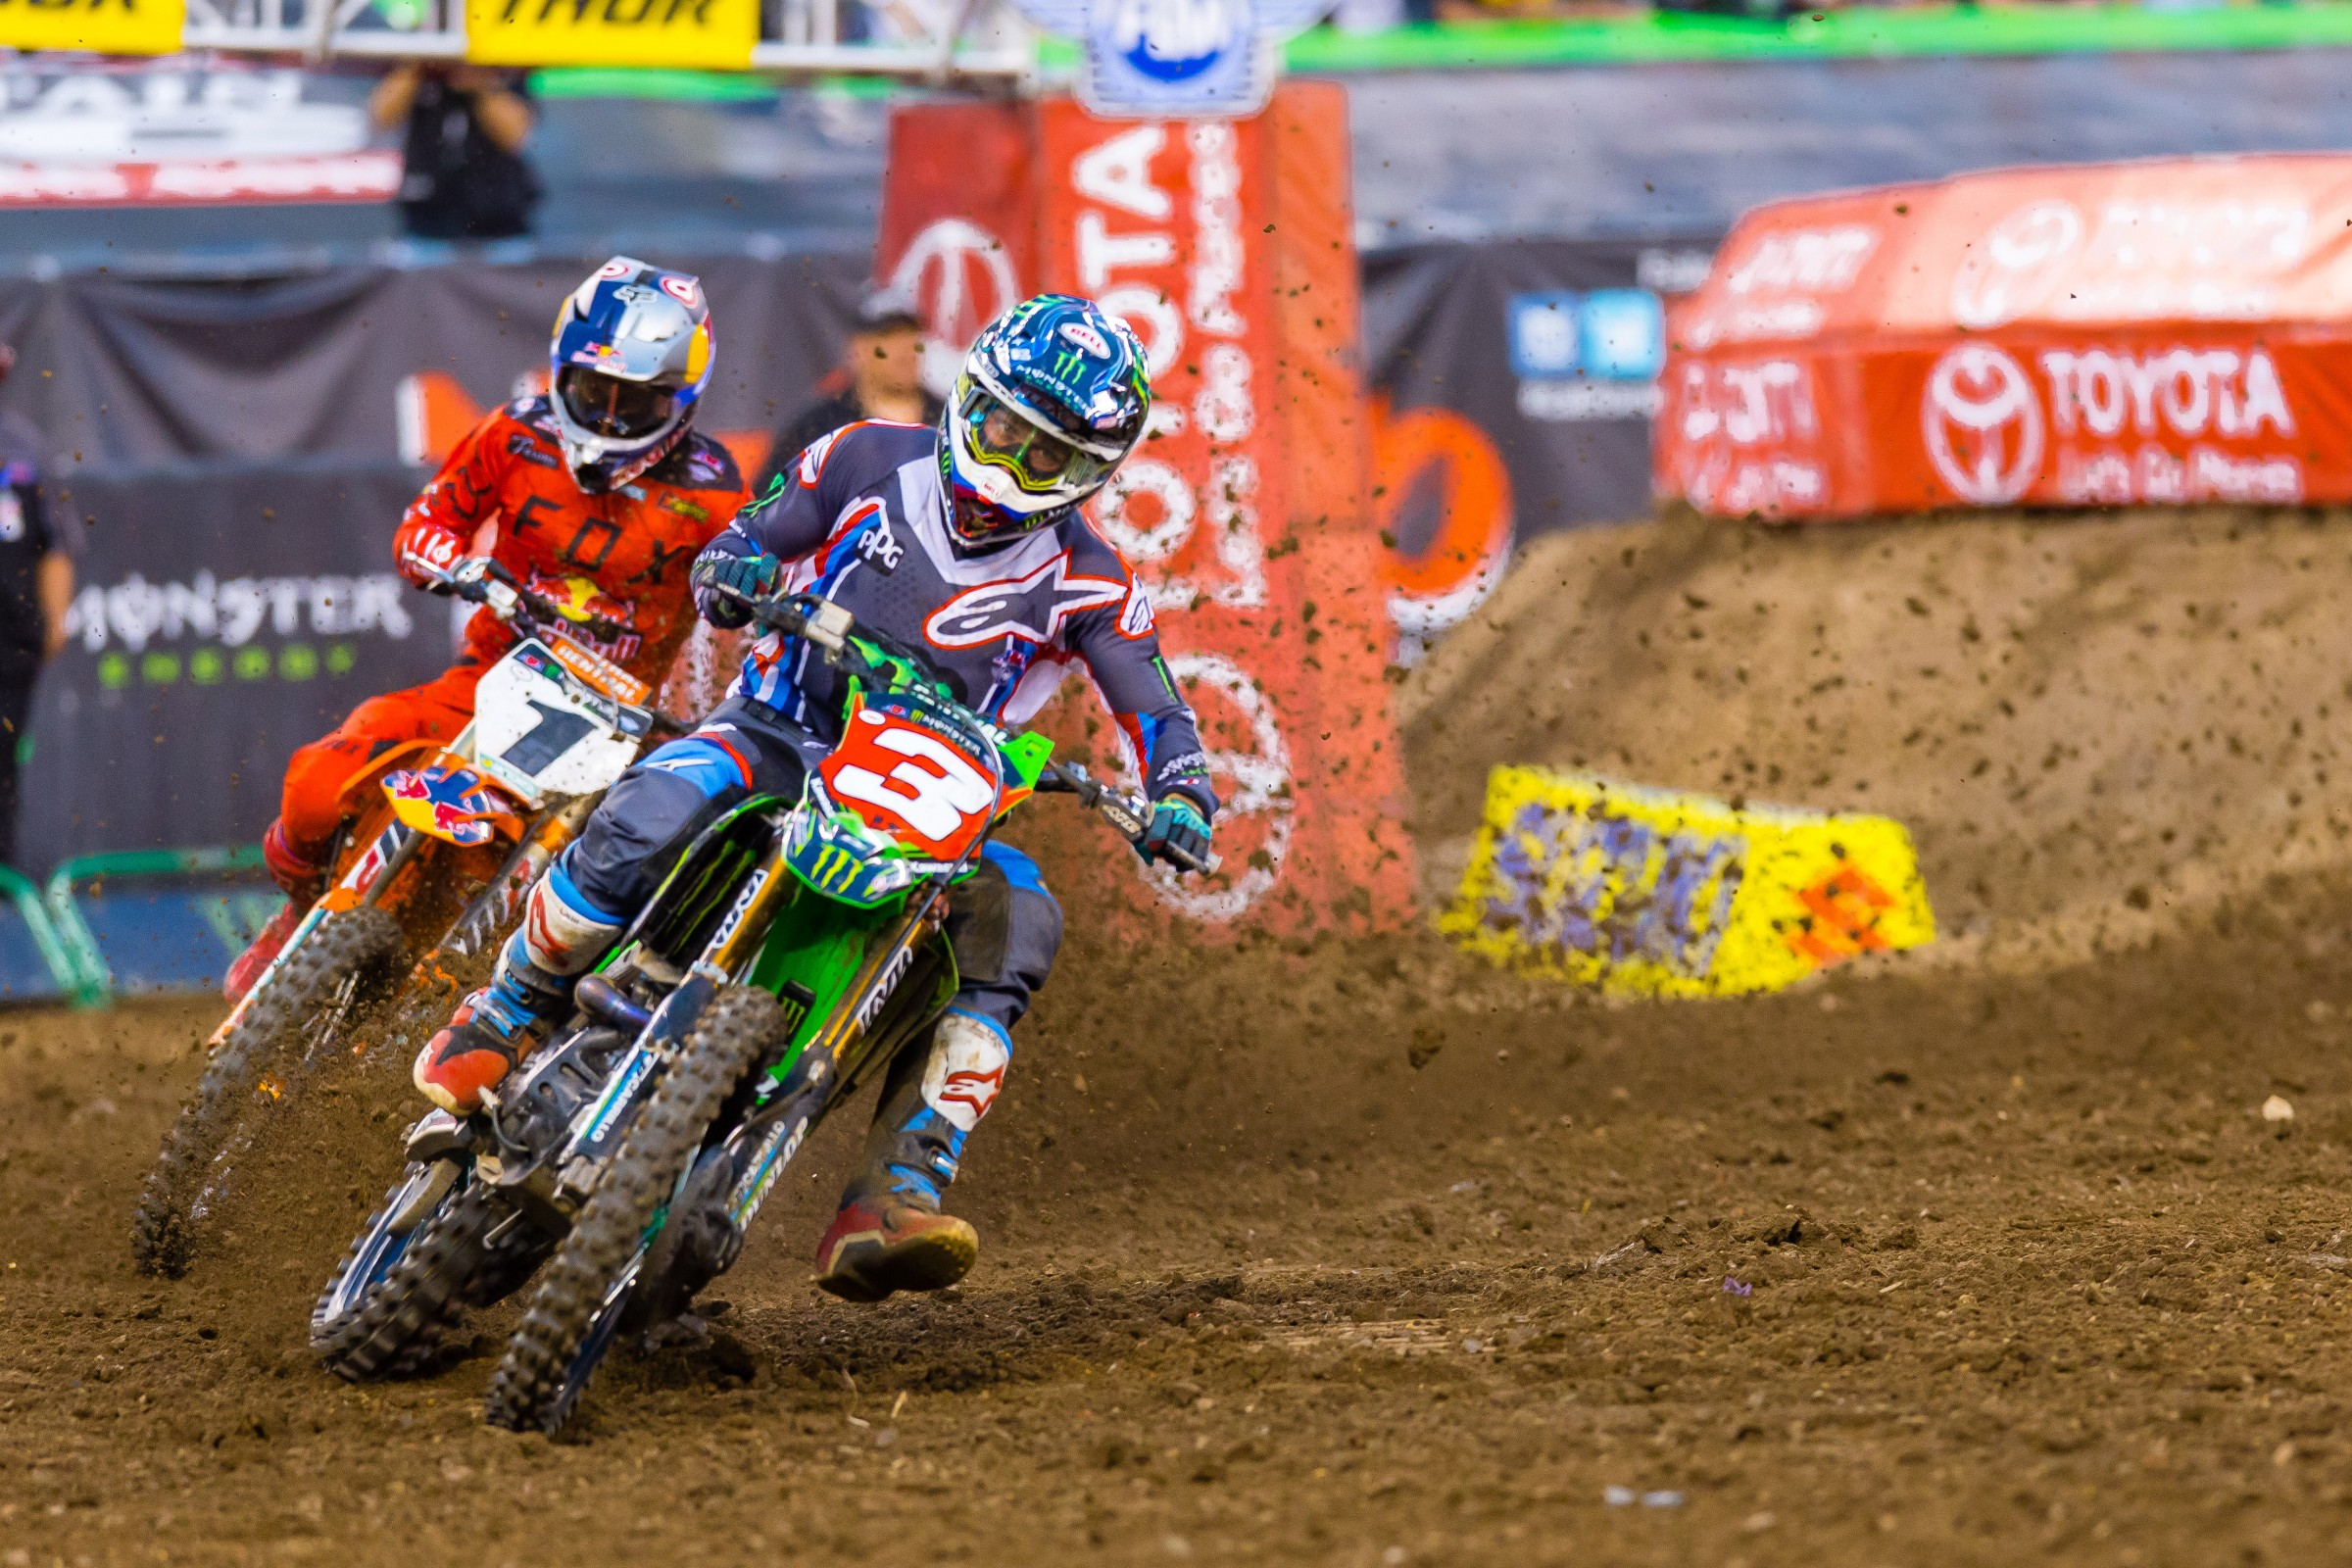 Tomac dismissed the idea that red plate pressure impacted his performance last weekend.